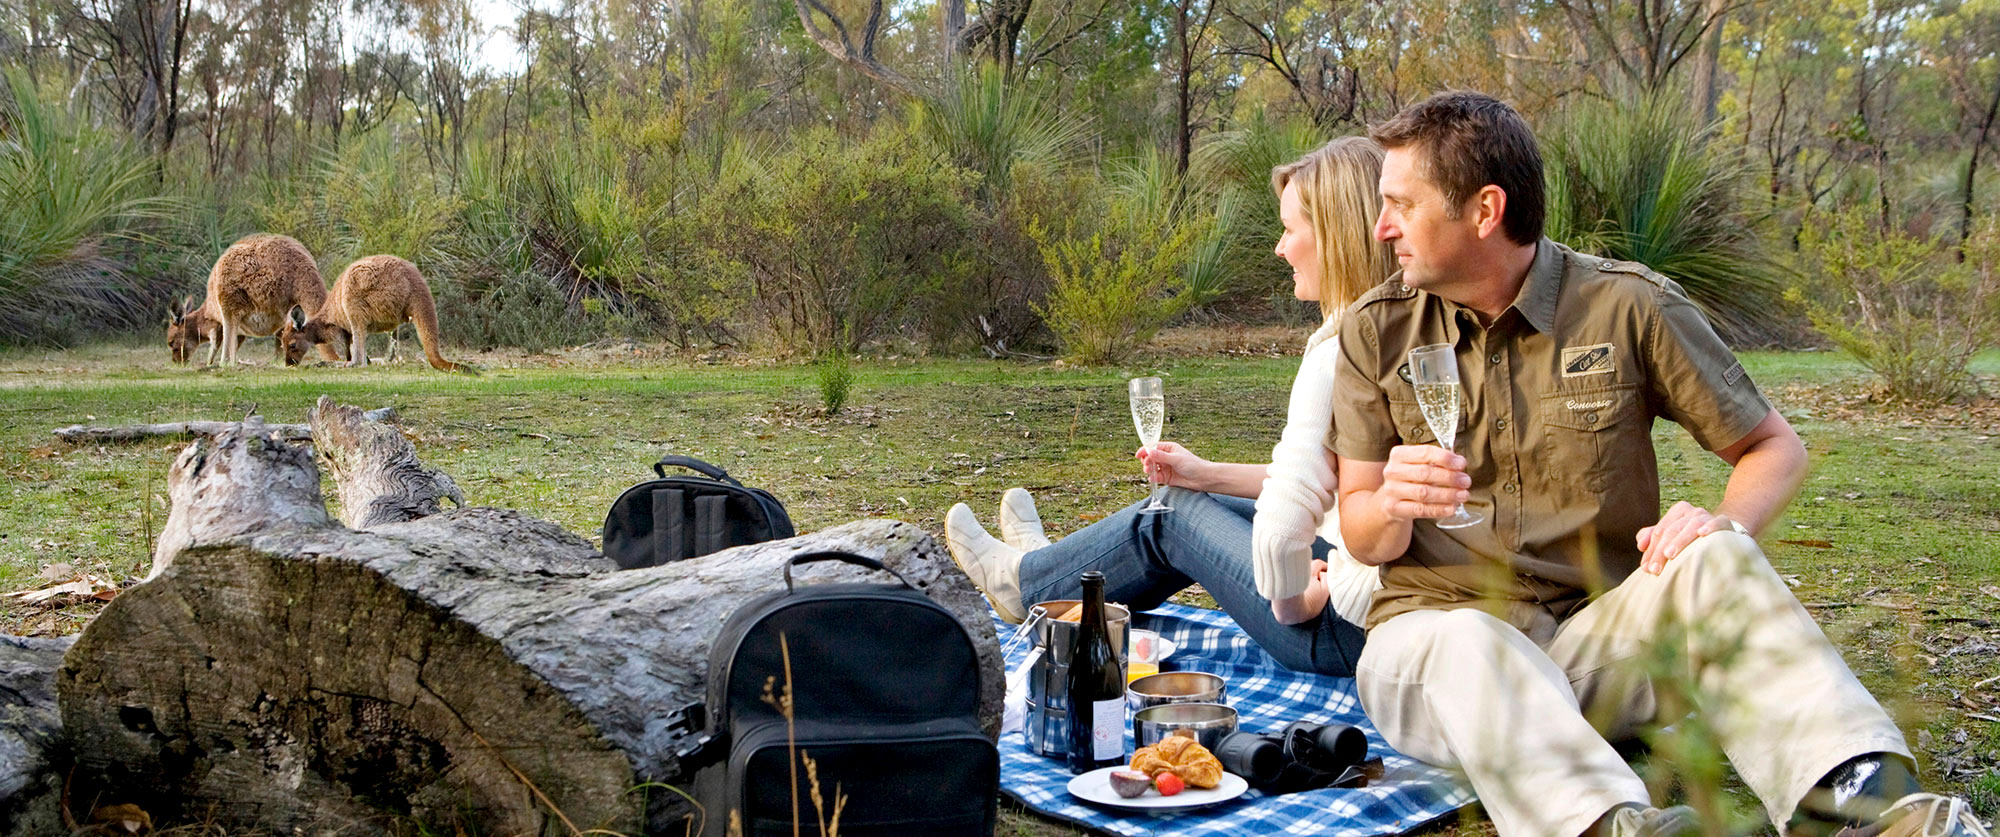 Australia Luxury Vacations: Unique Resorts Package - The Louise Barossa Valley